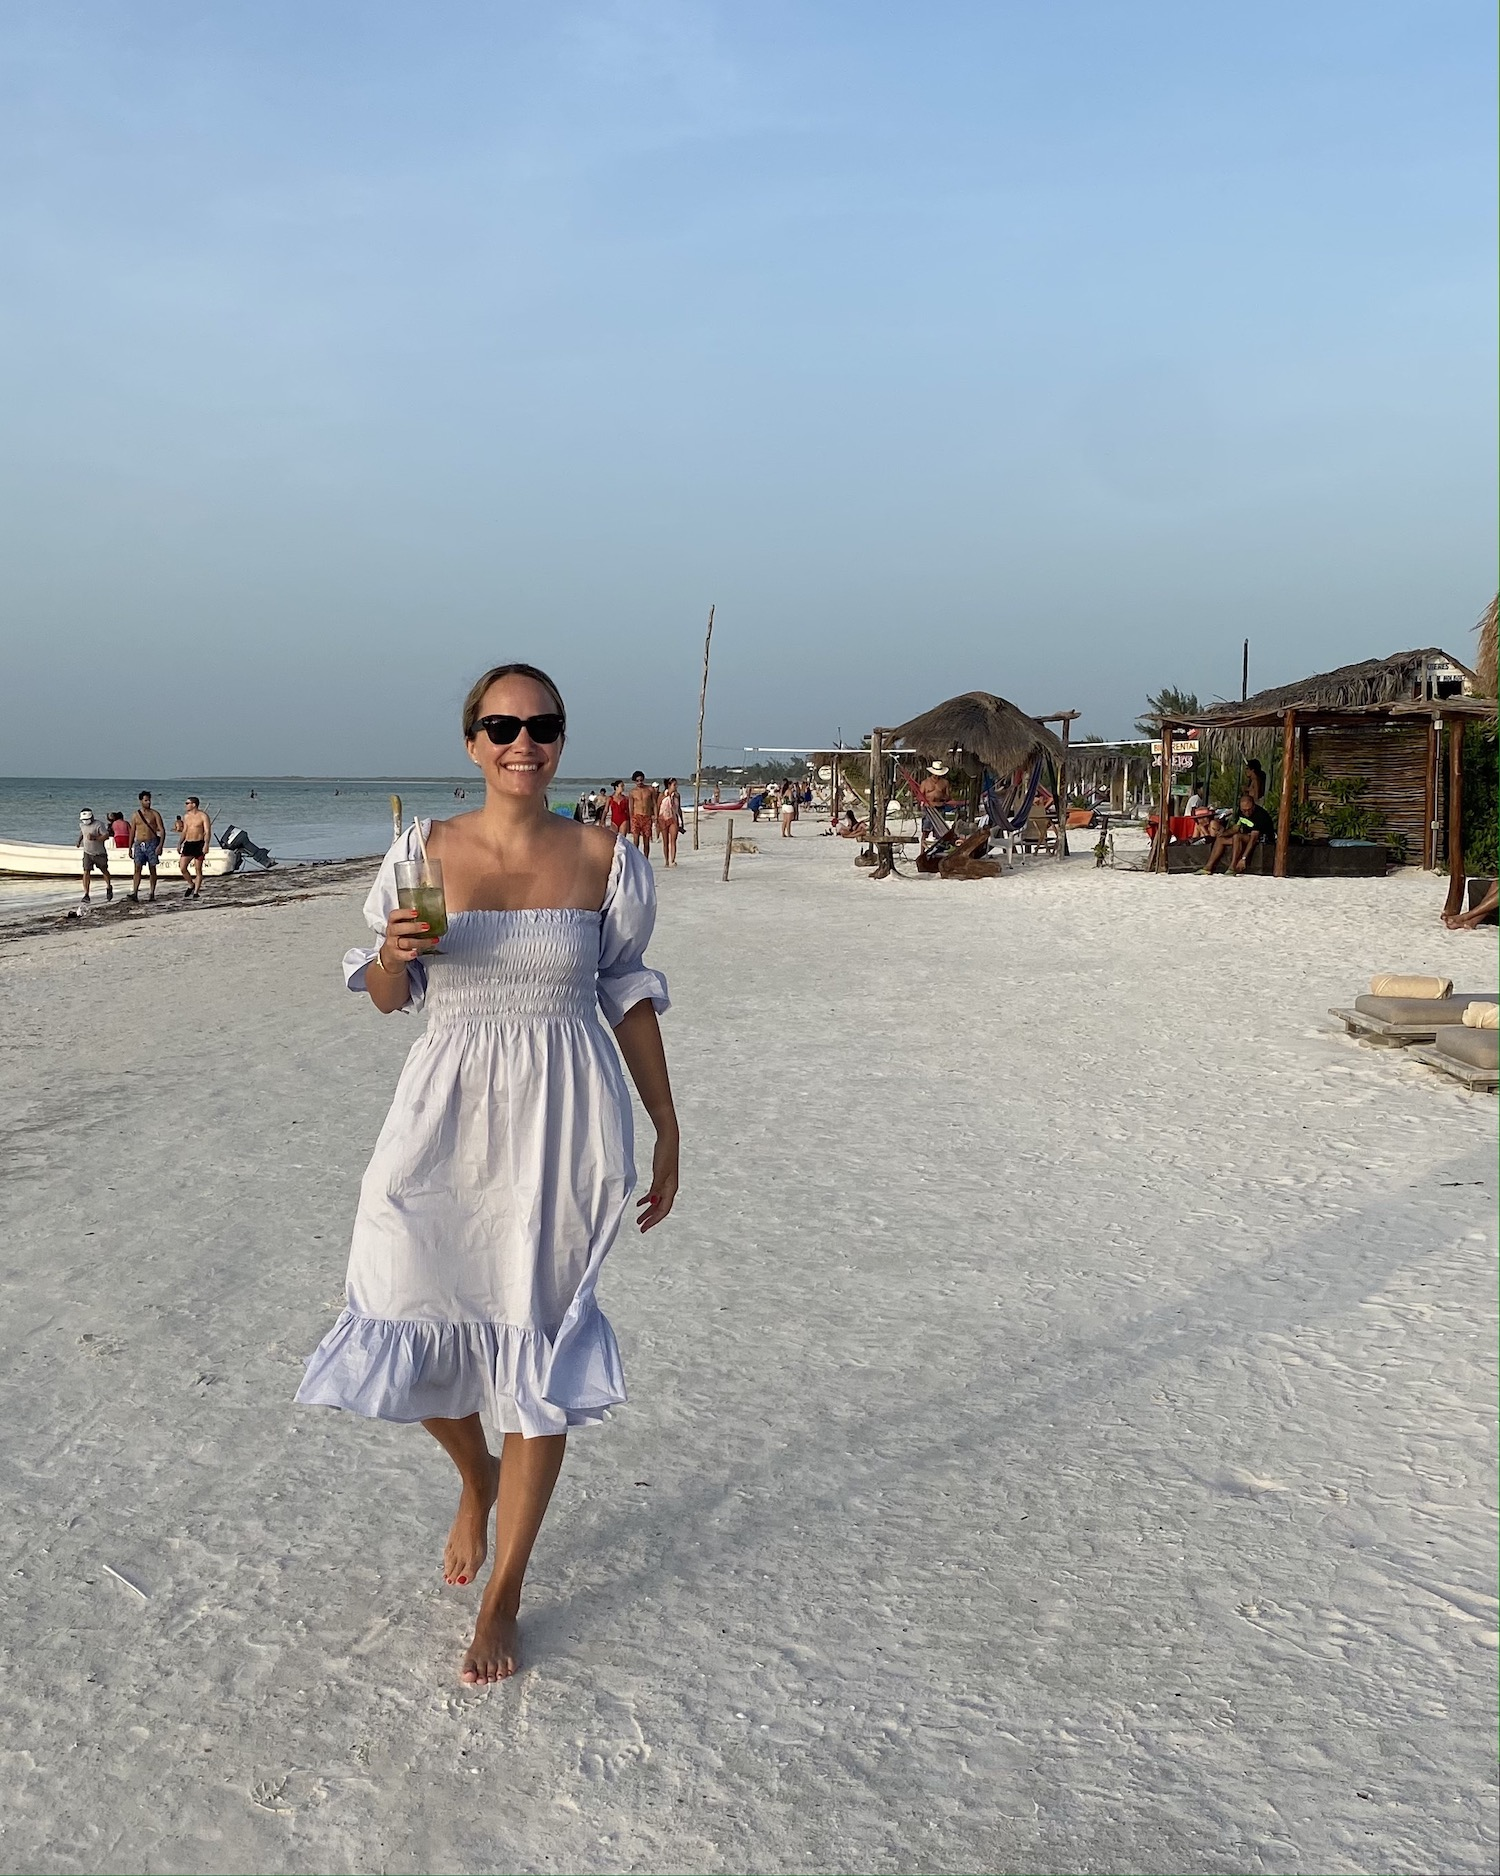 Isla Holbox COVID safety rules